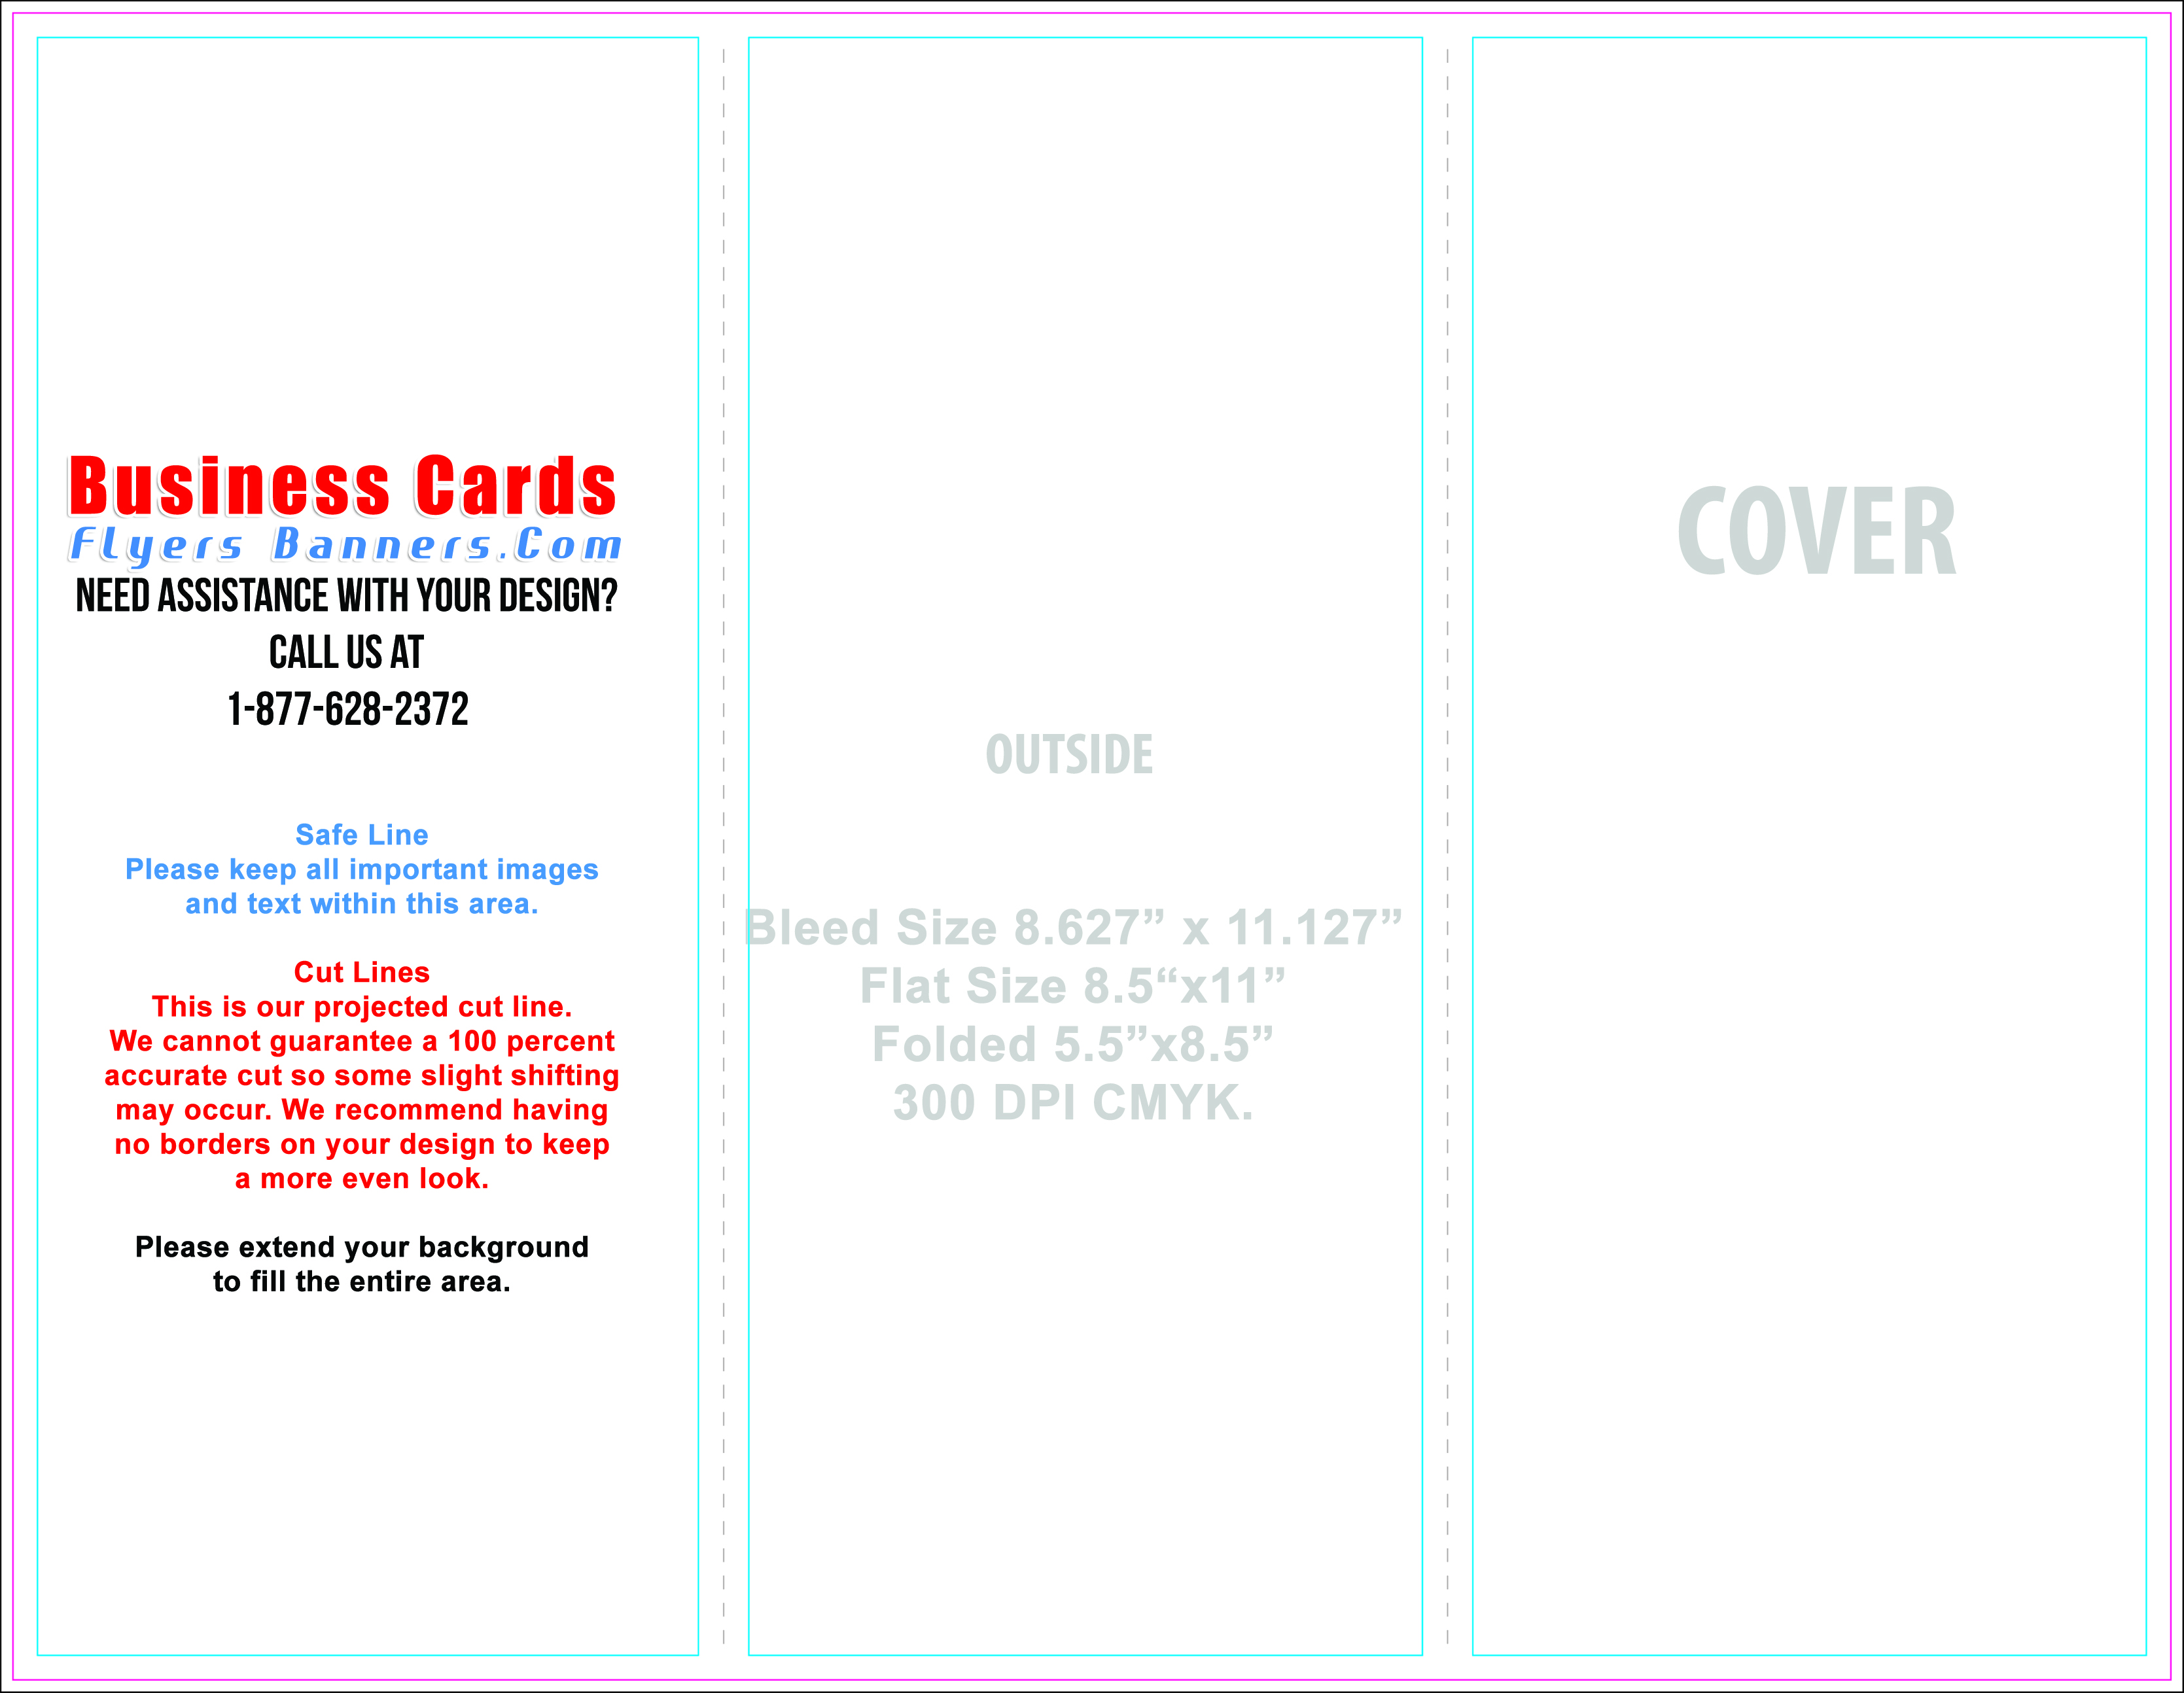 Brochure Templates Business Cards Flyers And Banners - 85 x 11 brochure template